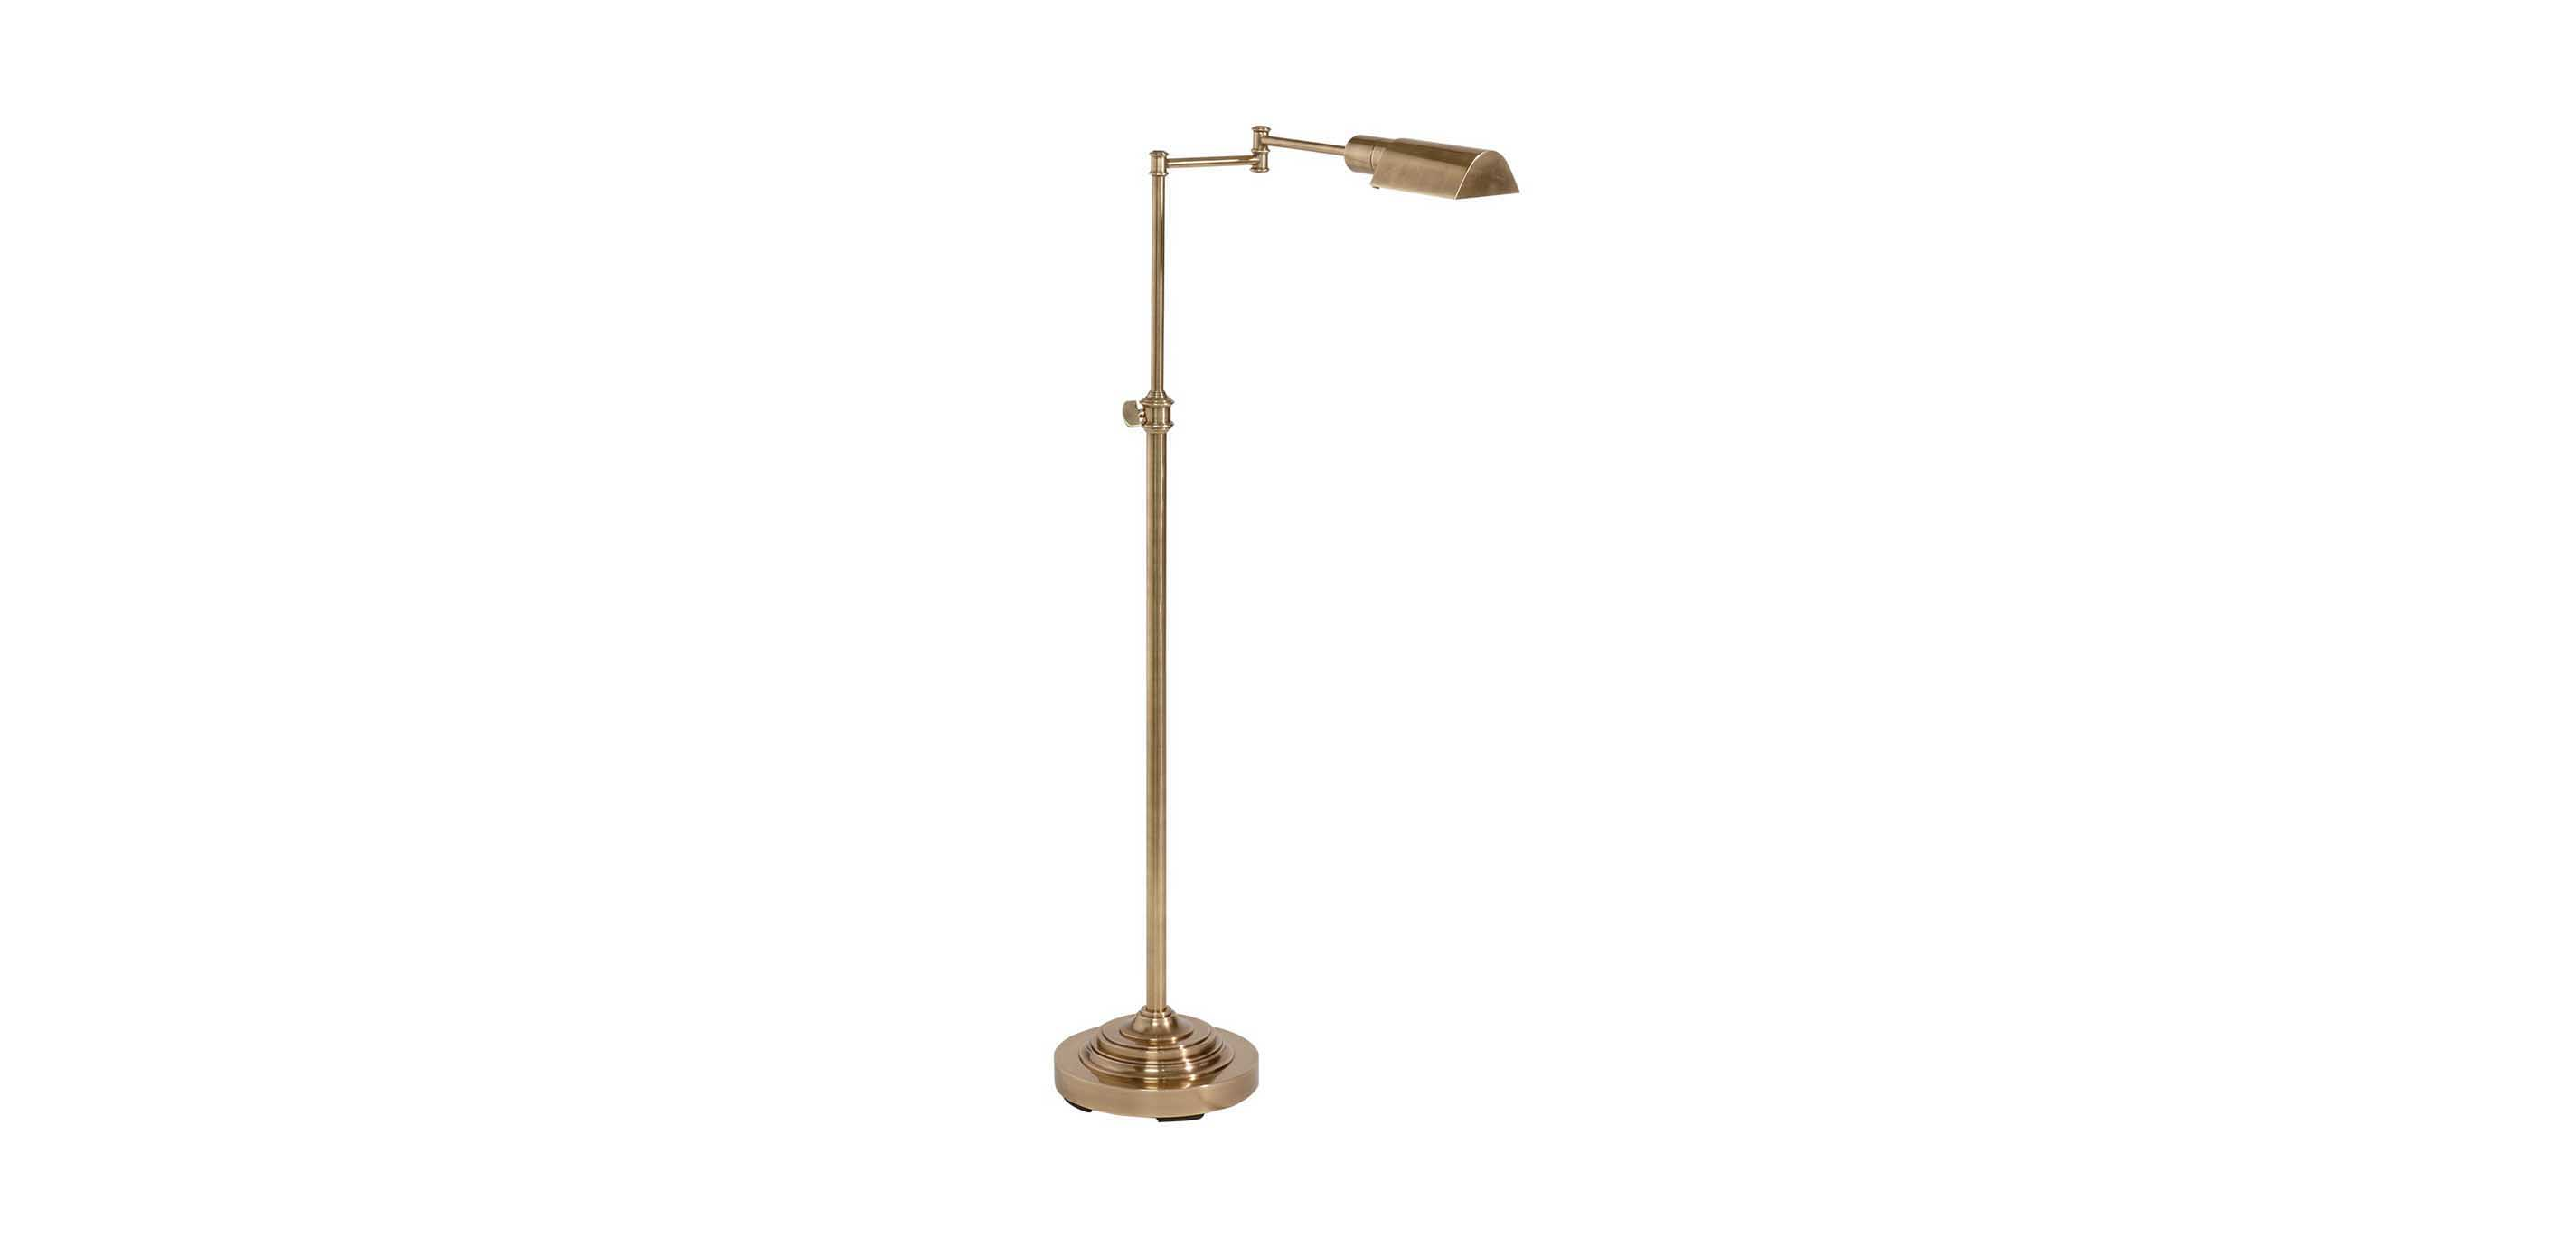 brass pharmacy floor lamp floor lamps ethan allen. Black Bedroom Furniture Sets. Home Design Ideas